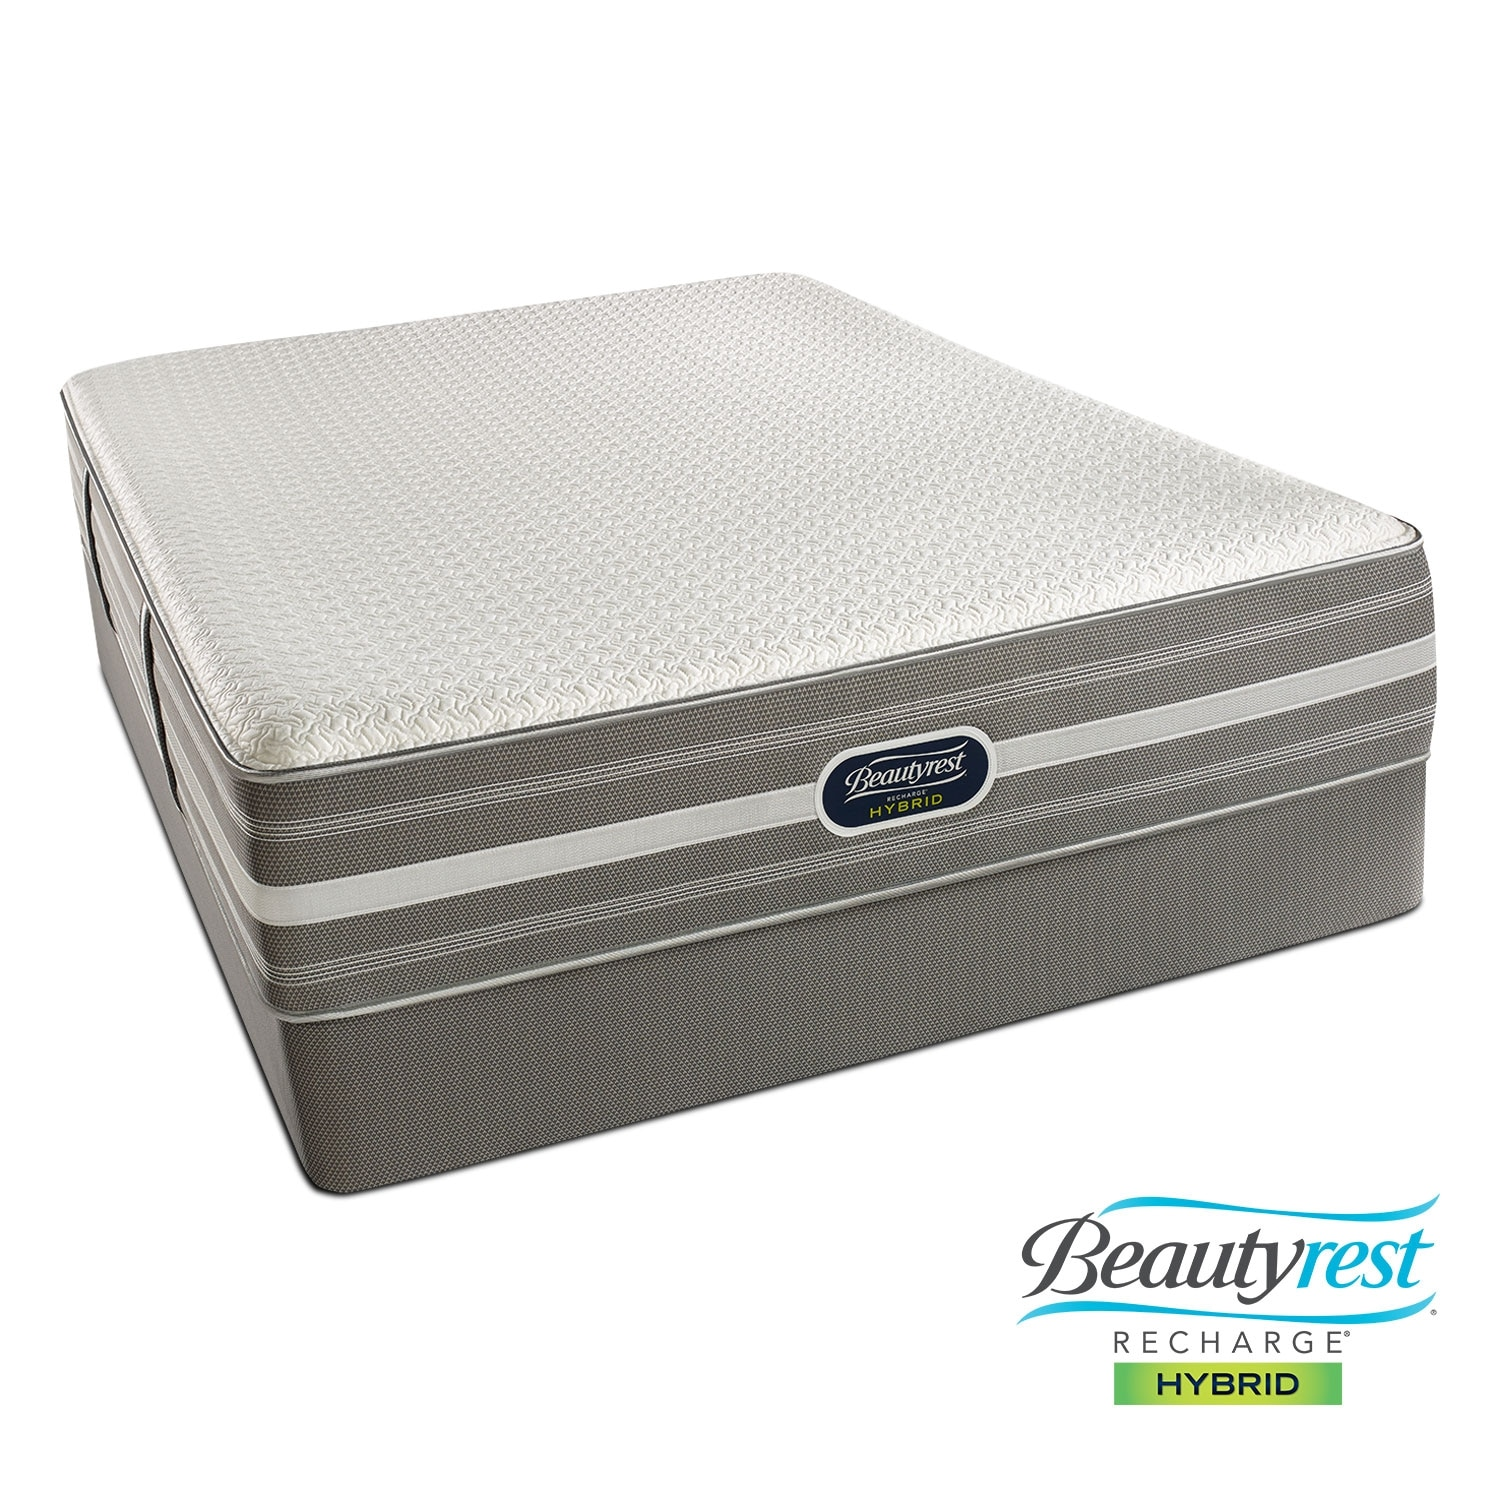 Mattresses and Bedding - Hopewell Luxury Firm Queen Mattress/Low Profile Foundation Set